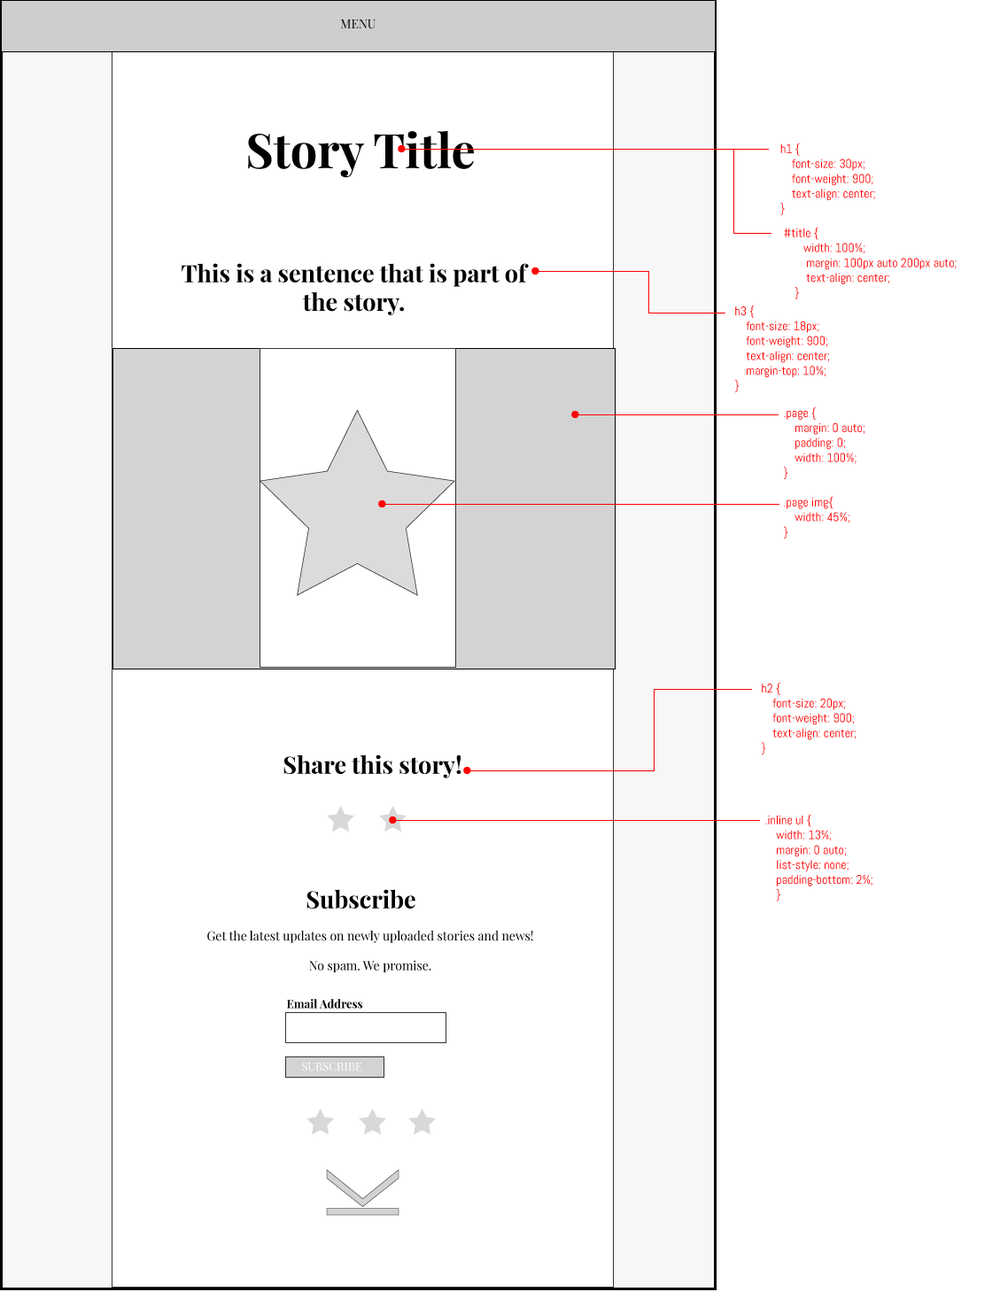 specifications-guide-story.png